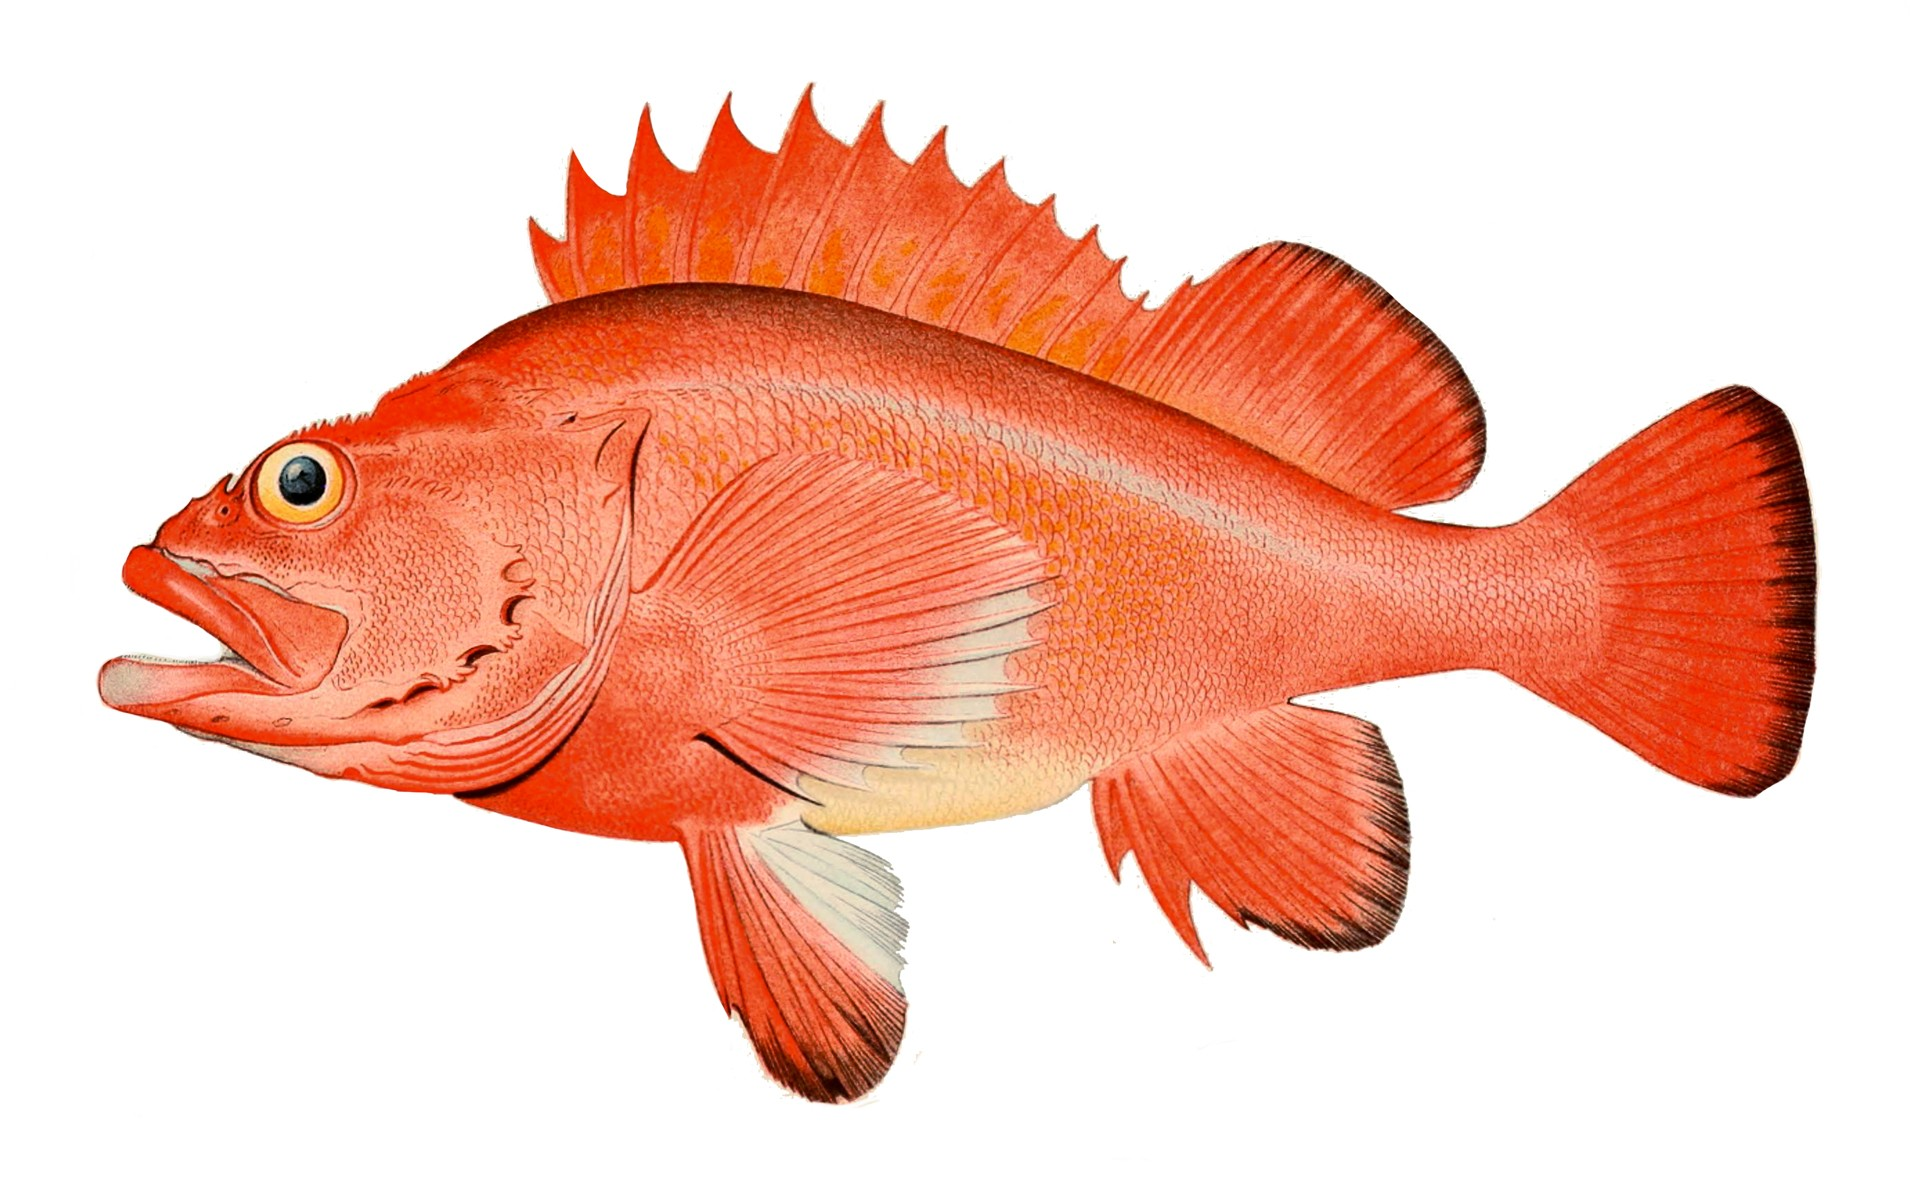 Illustration of Rockfish